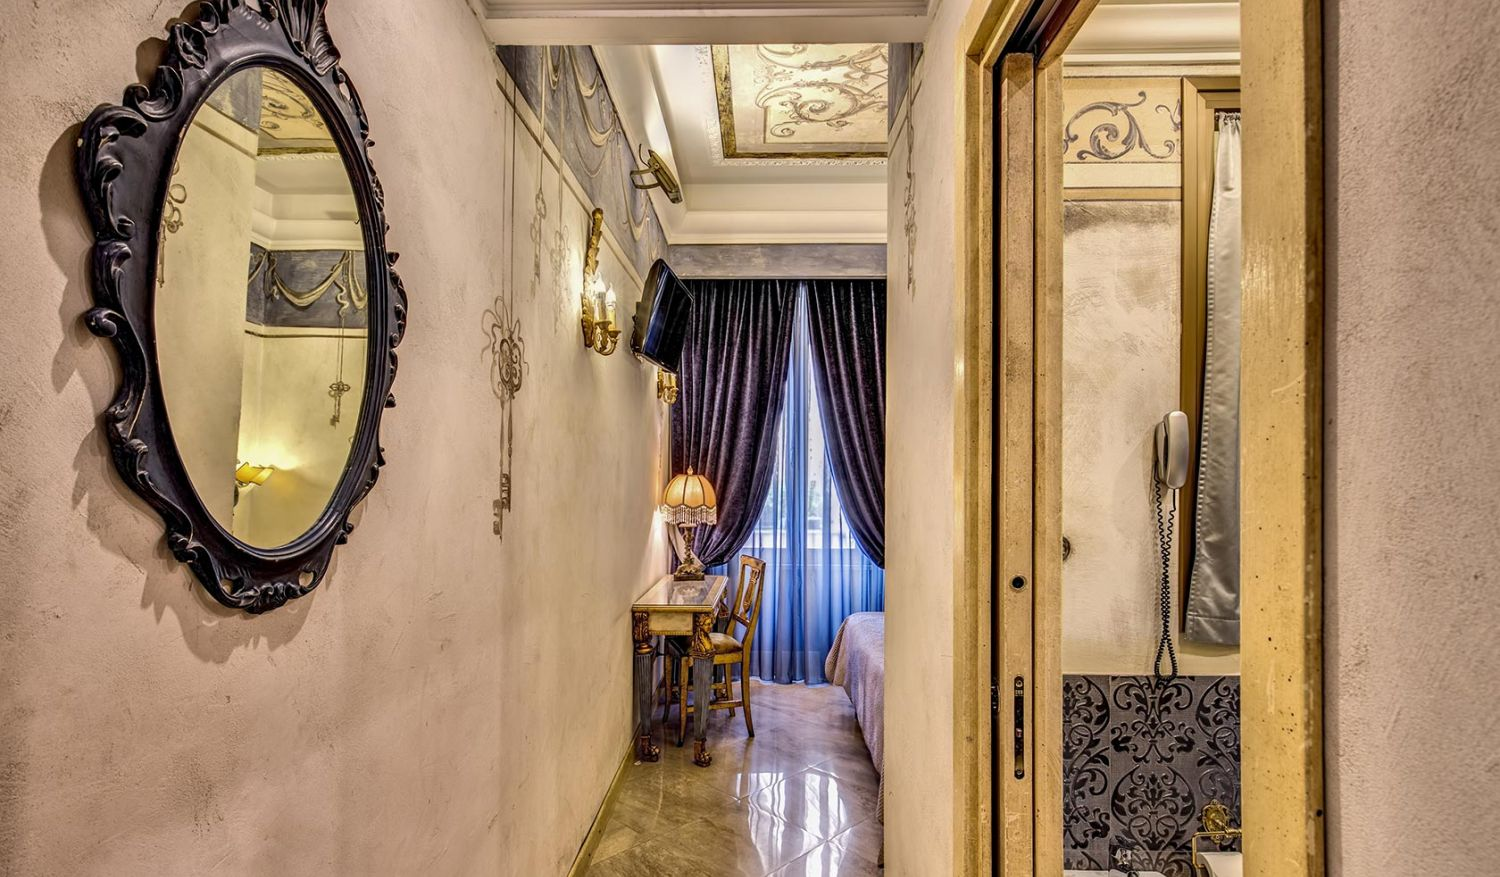 Elegant 4-star hotel in the center of Rome